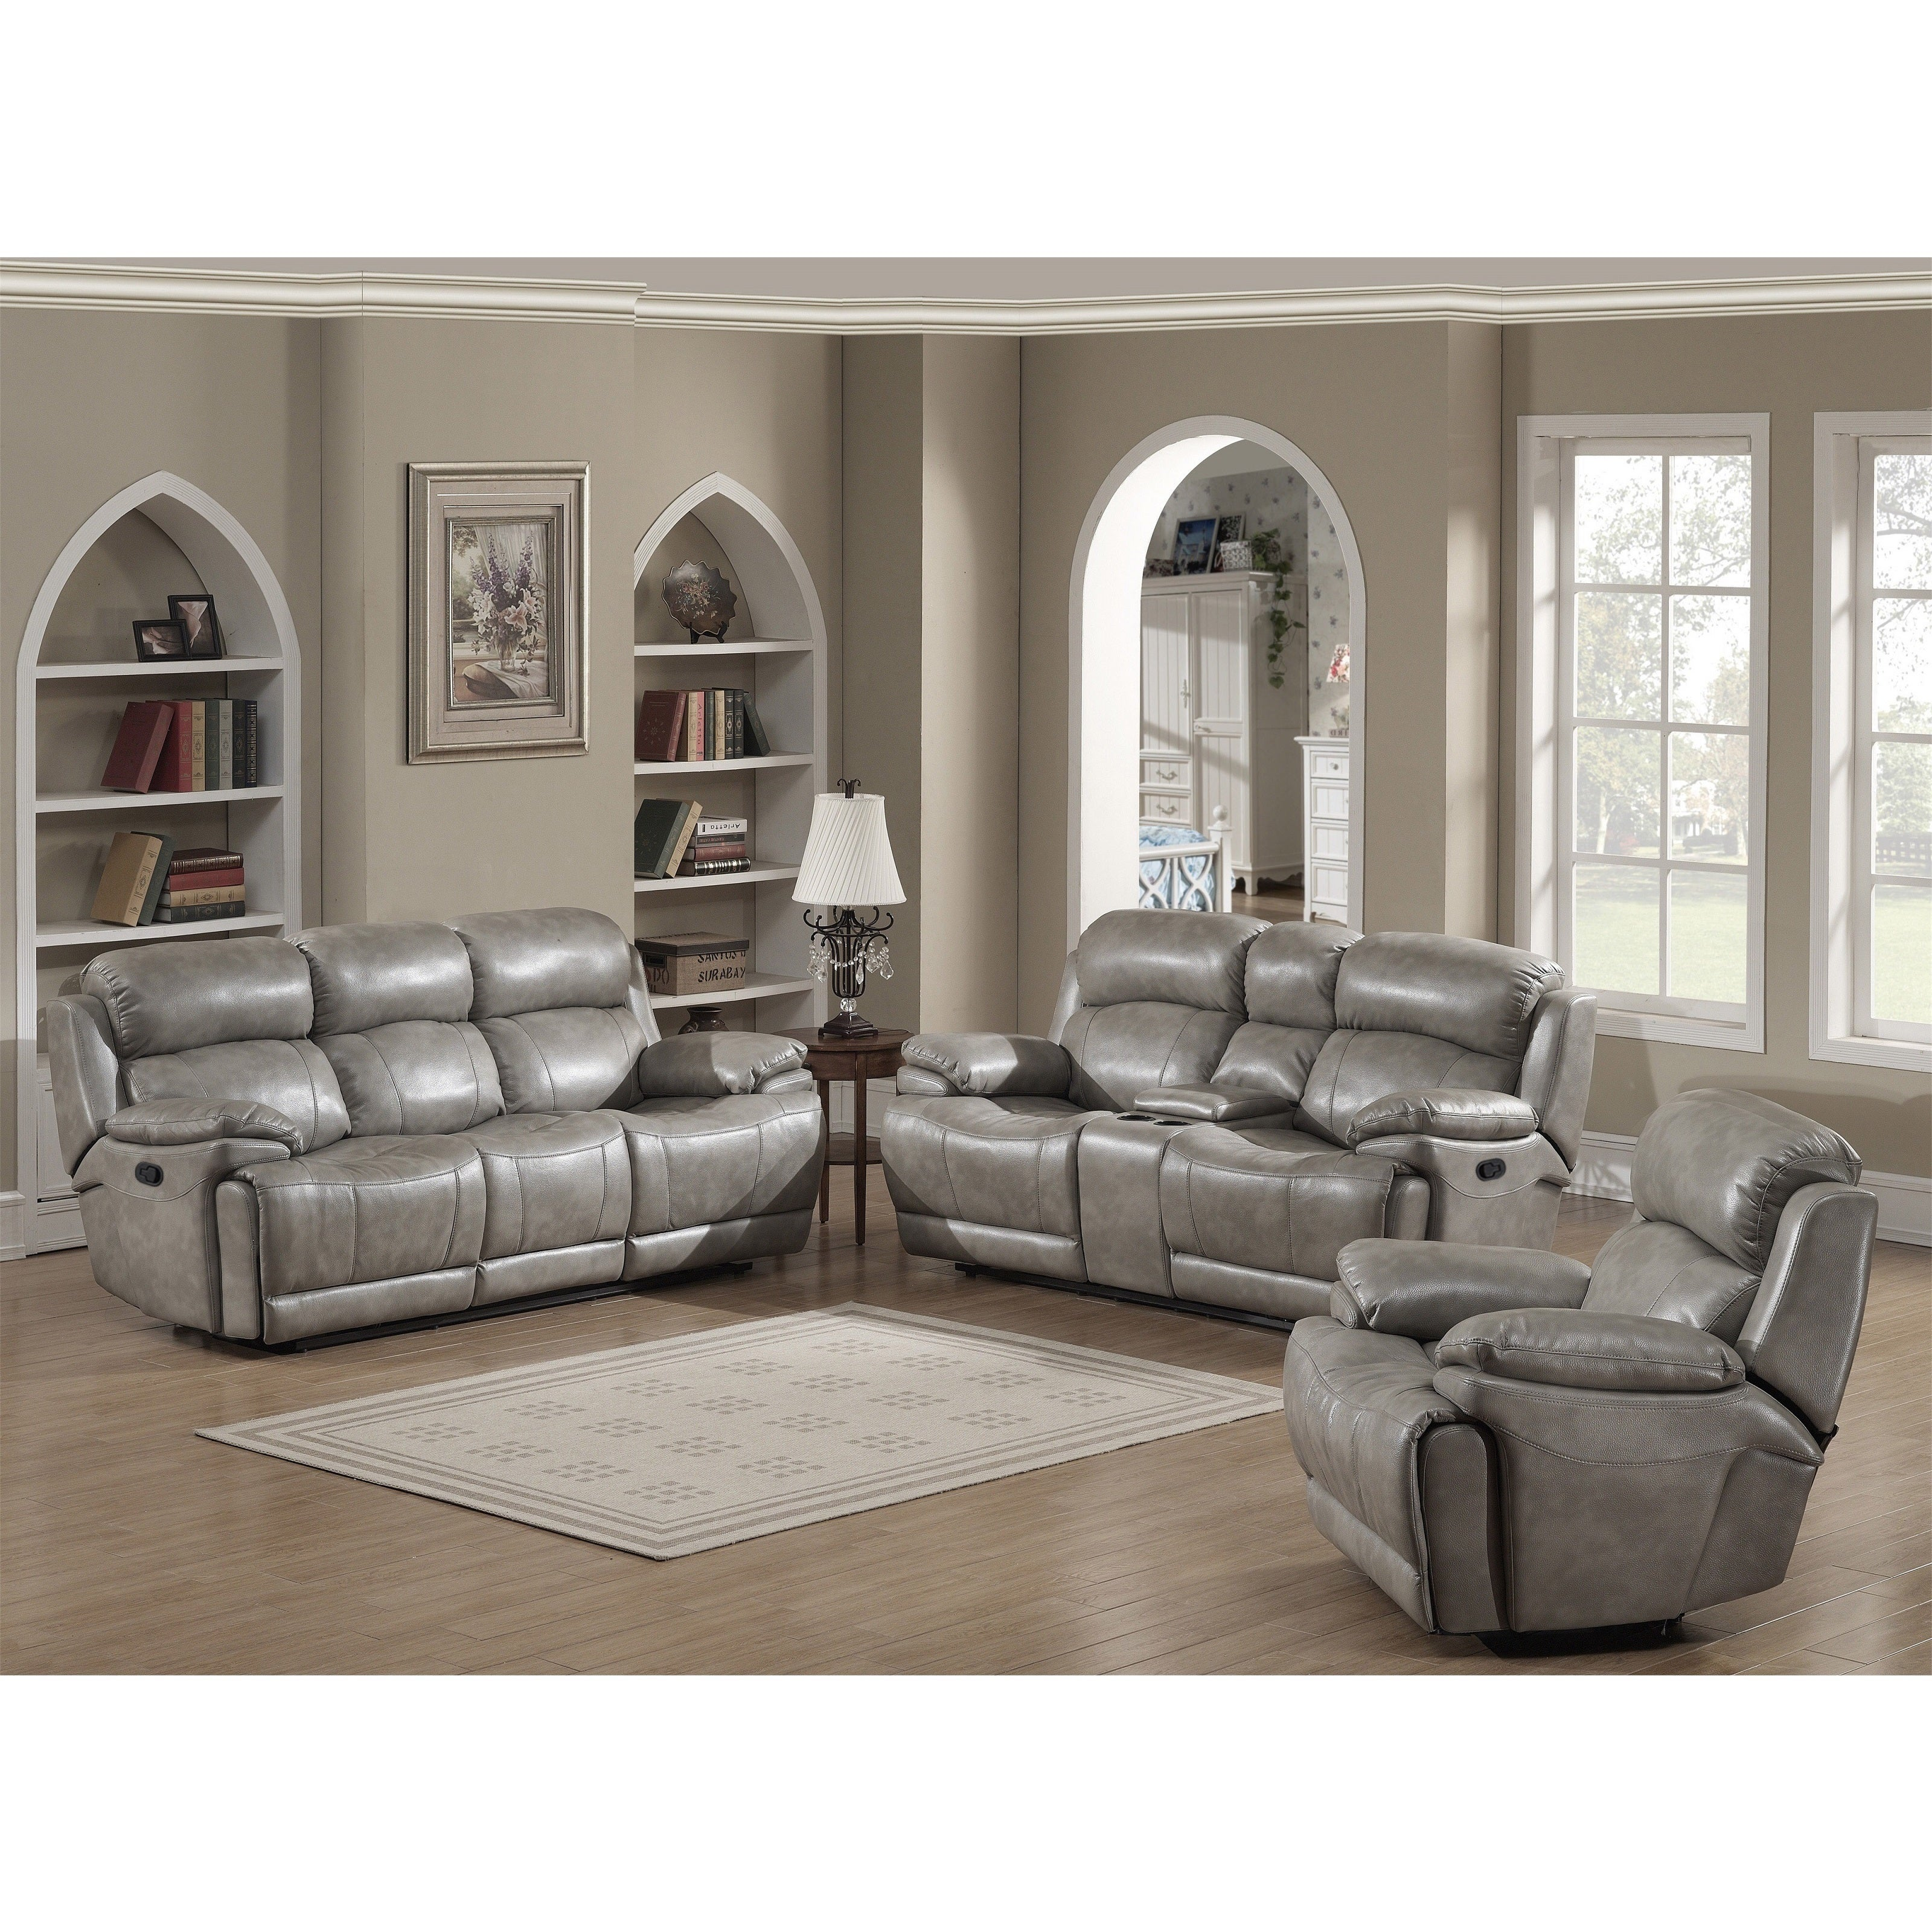 set shipping home sectional fabric overstock sofa free pillows garden product elderberry with loveseat and prism today